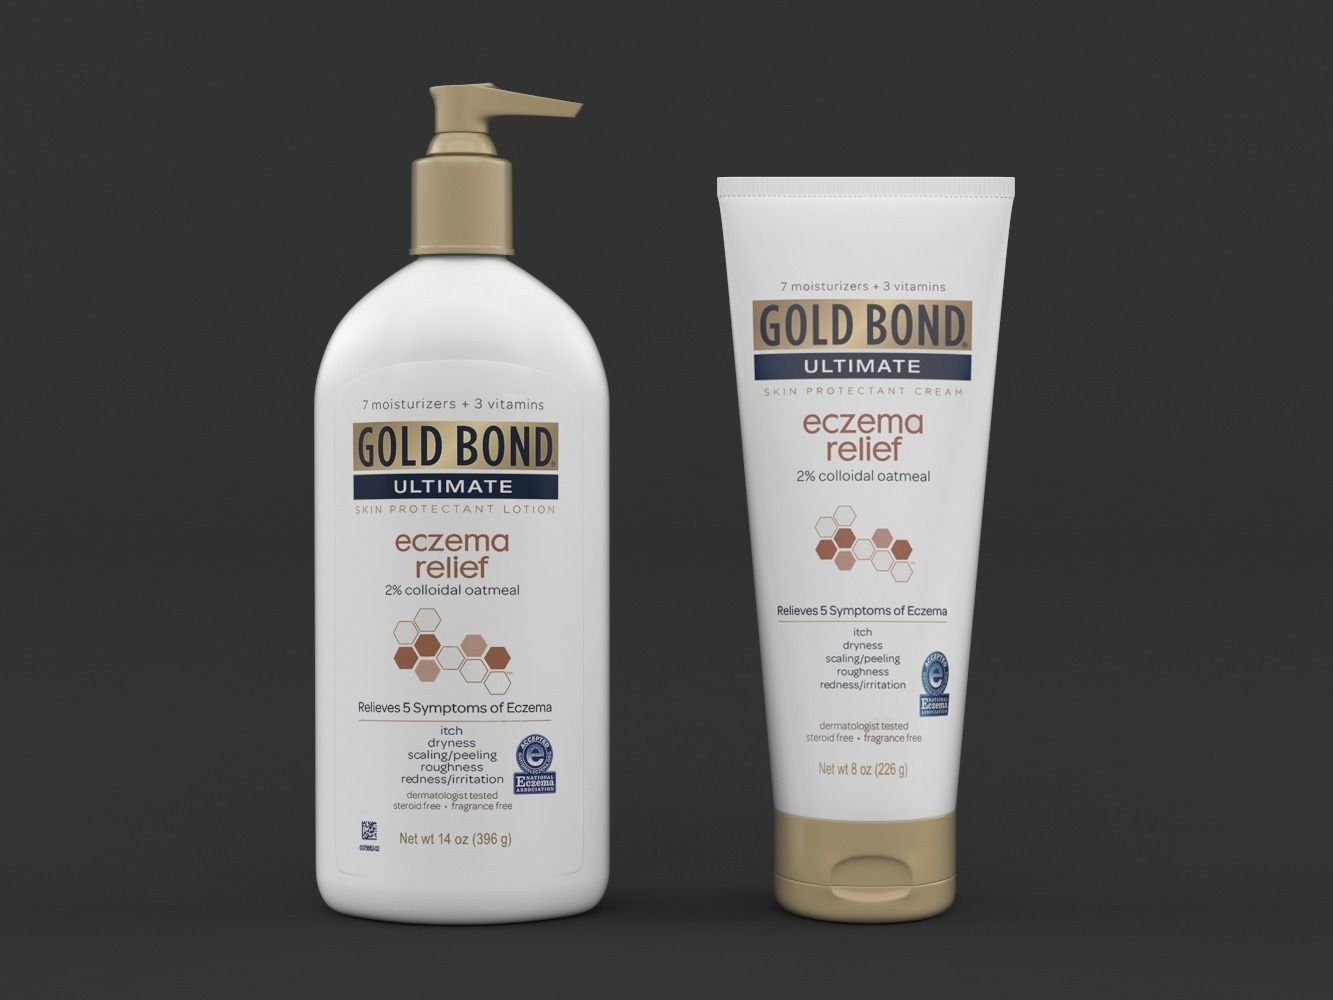 Gold Bond Ultimate Eczema Relief Lotion